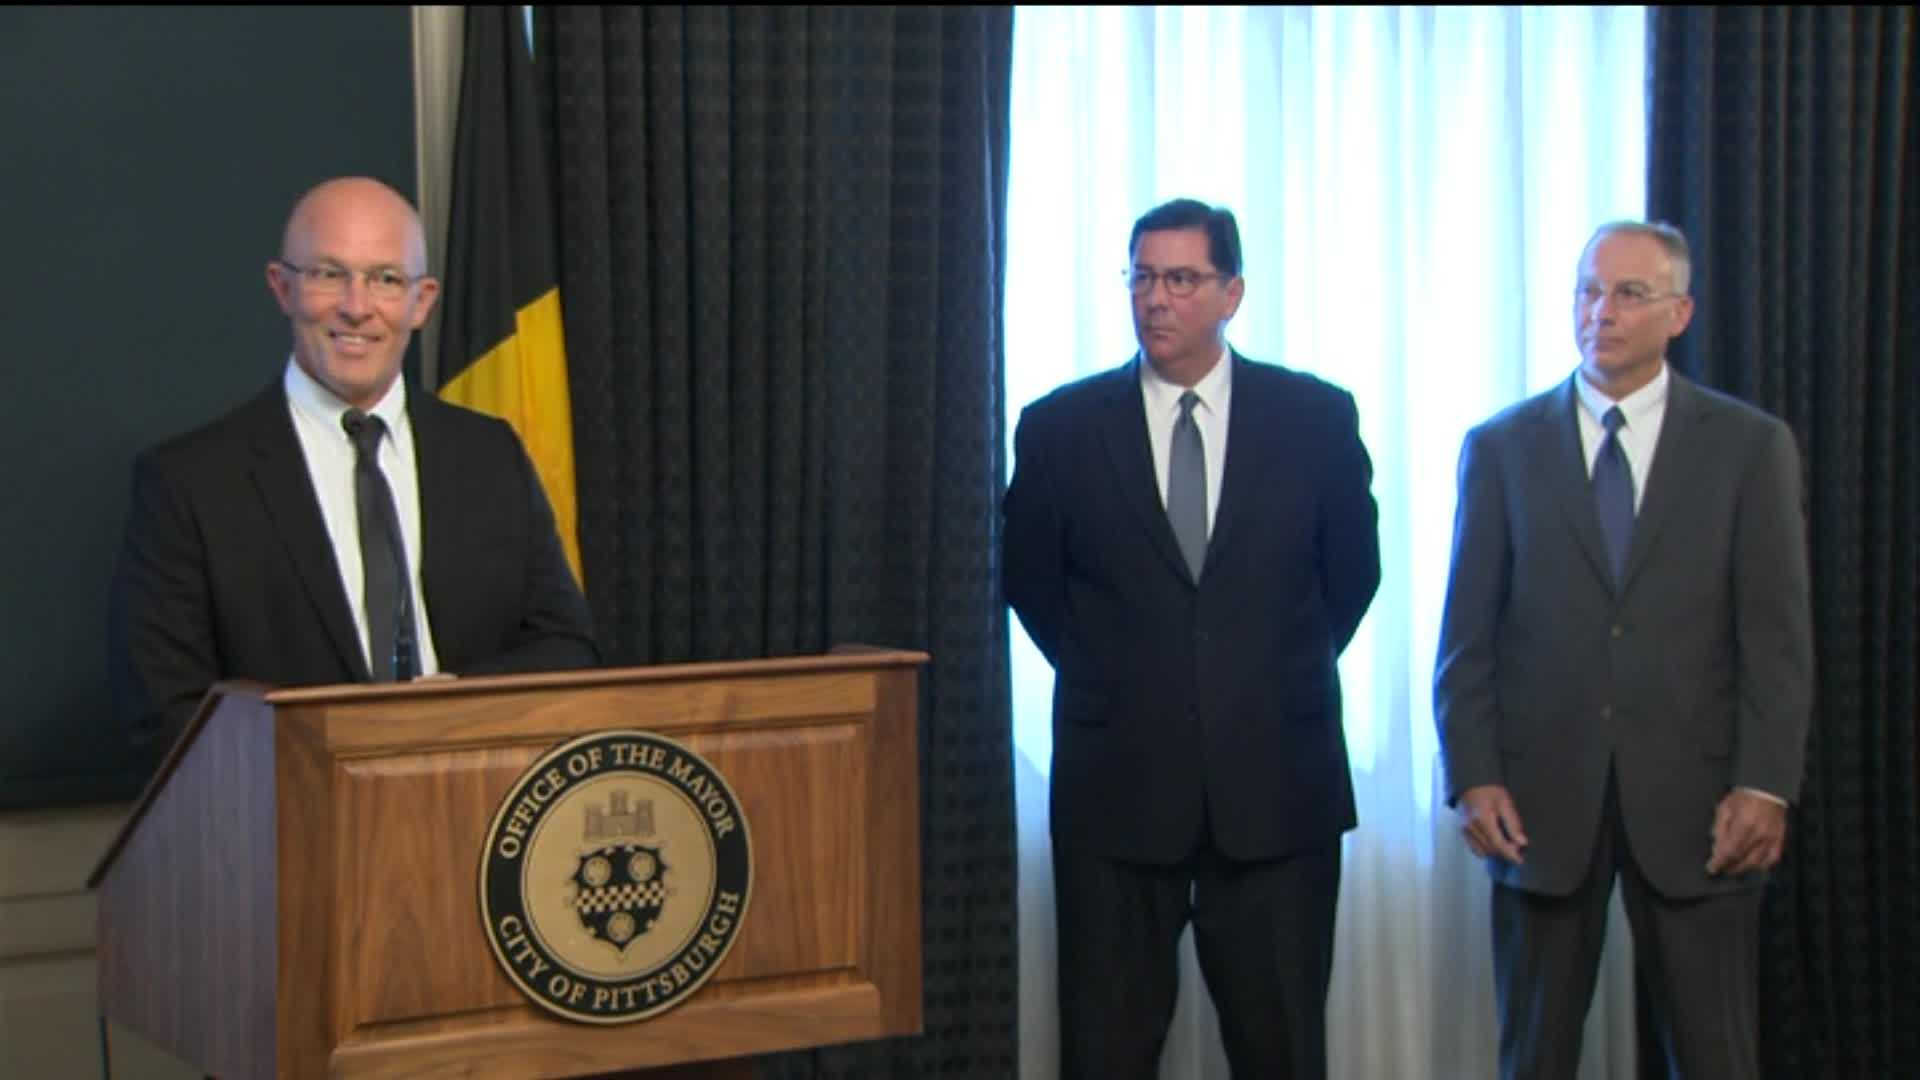 Pittsburgh Police Chief Cameron McLay, Mayor Bill Peduto and Public Safety Director Stephen Bucar